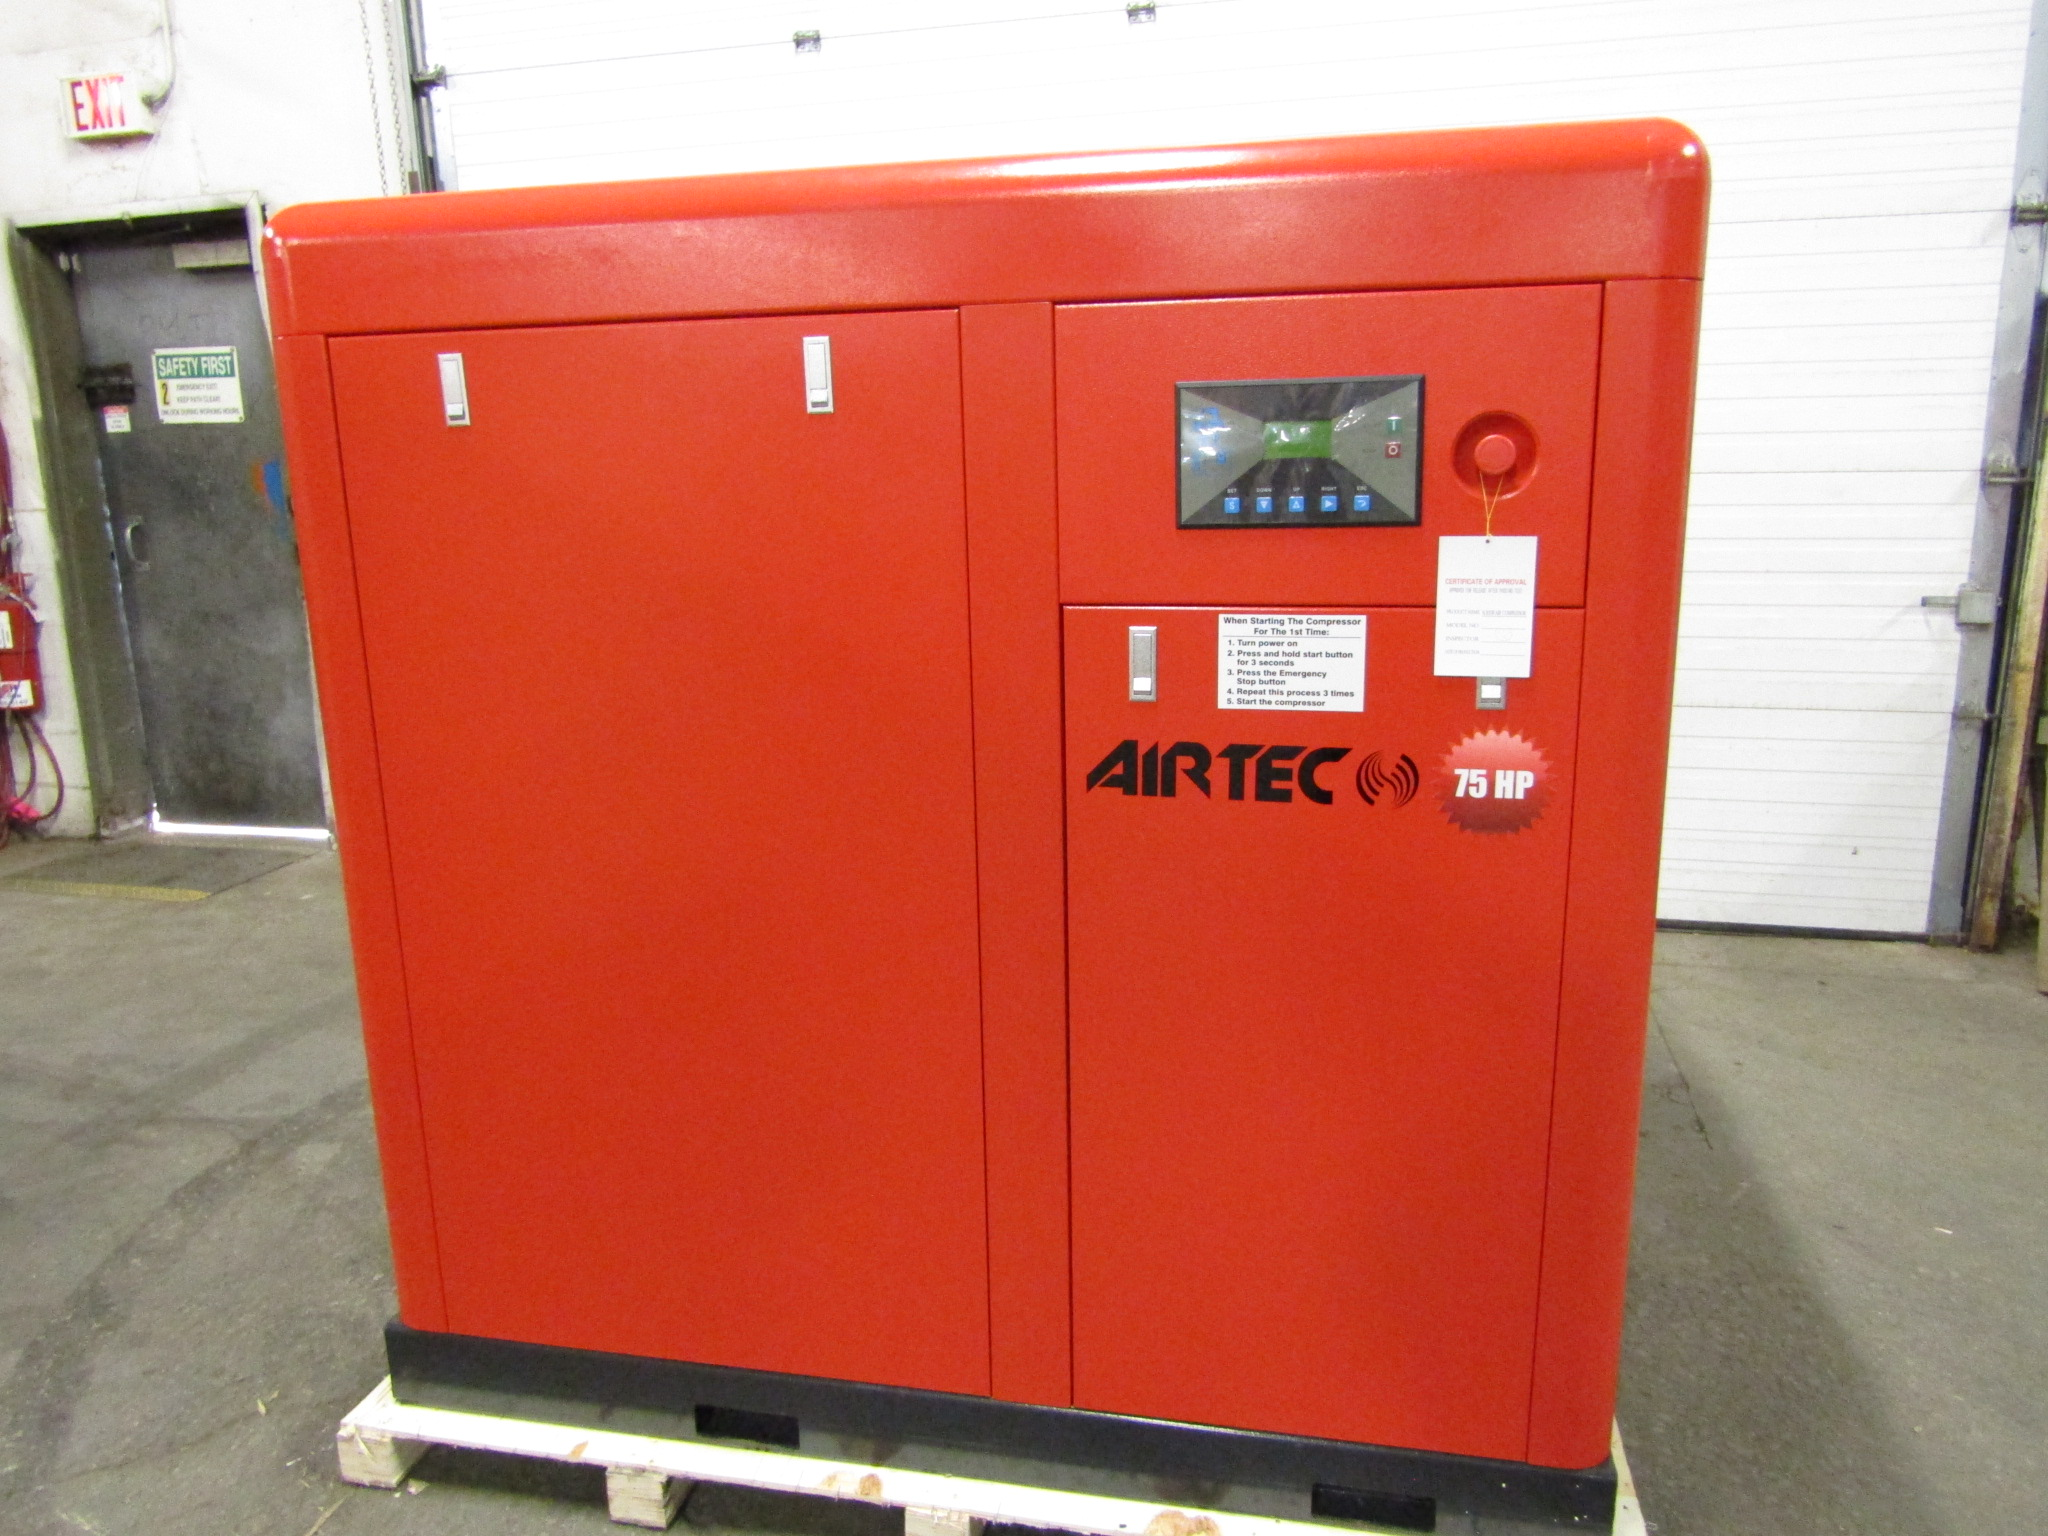 Airtec 75HP Rotary Screw Air Compressor - MINT UNUSED COMPRESSOR